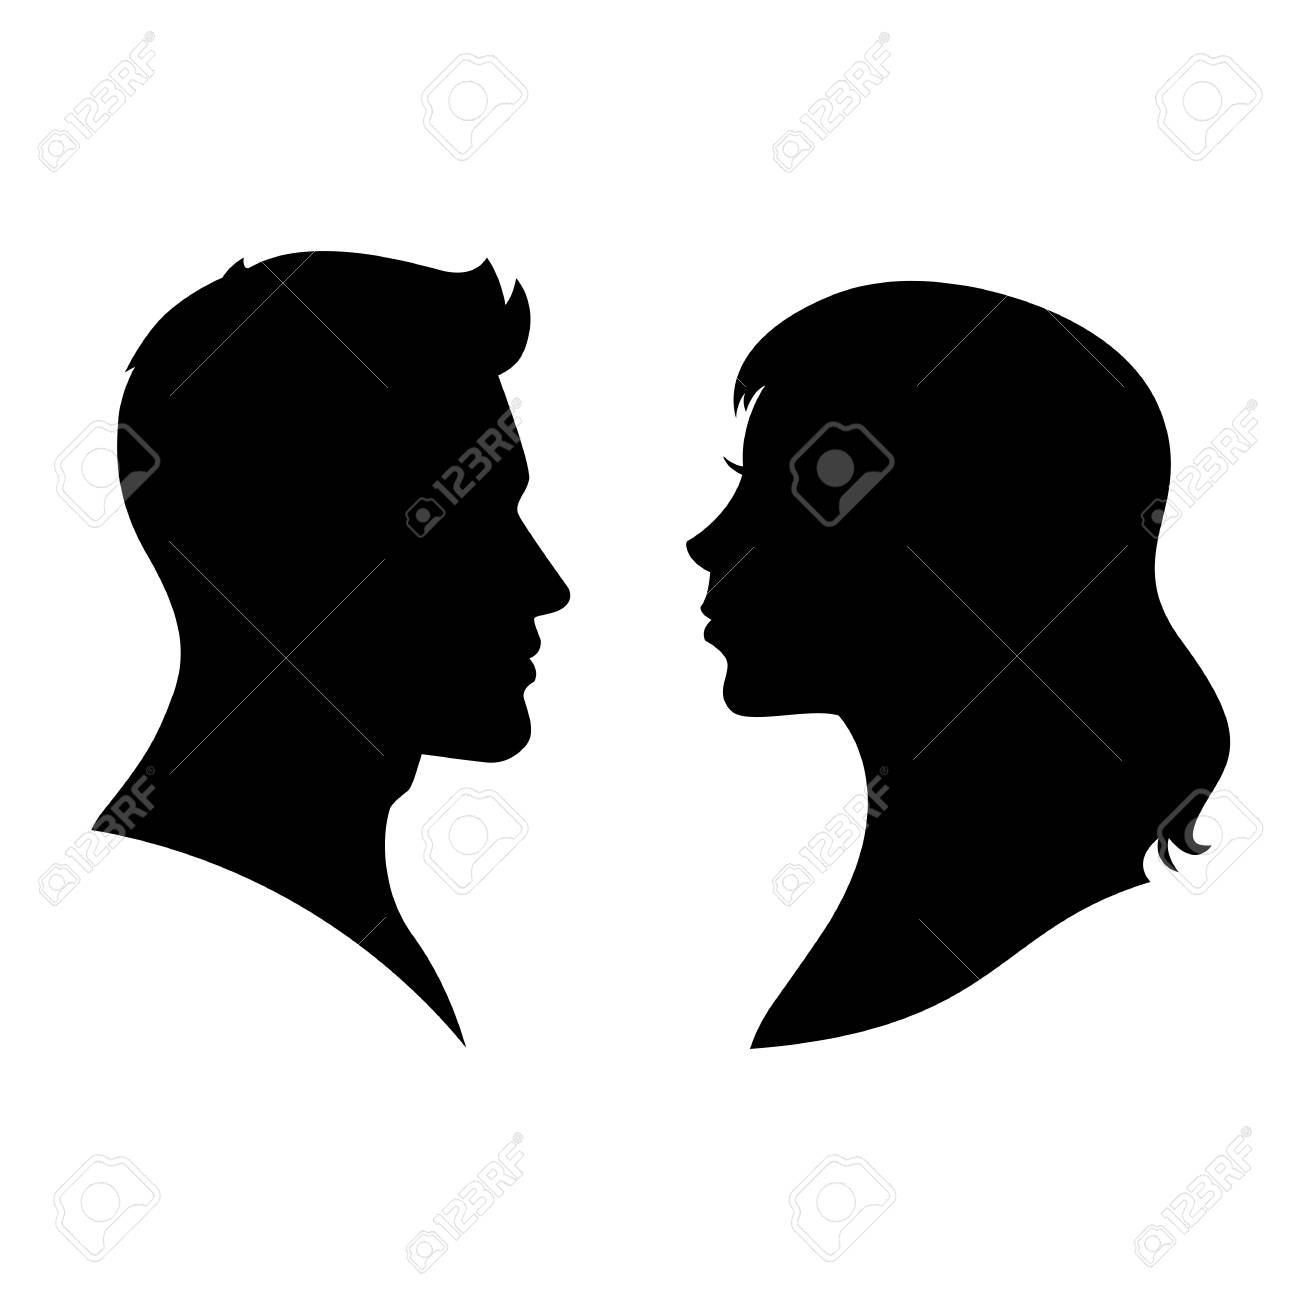 Man And Woman Silhouette Face To Face Vector Royalty Free Cliparts Vectors And Stock Illustration Image 102793688